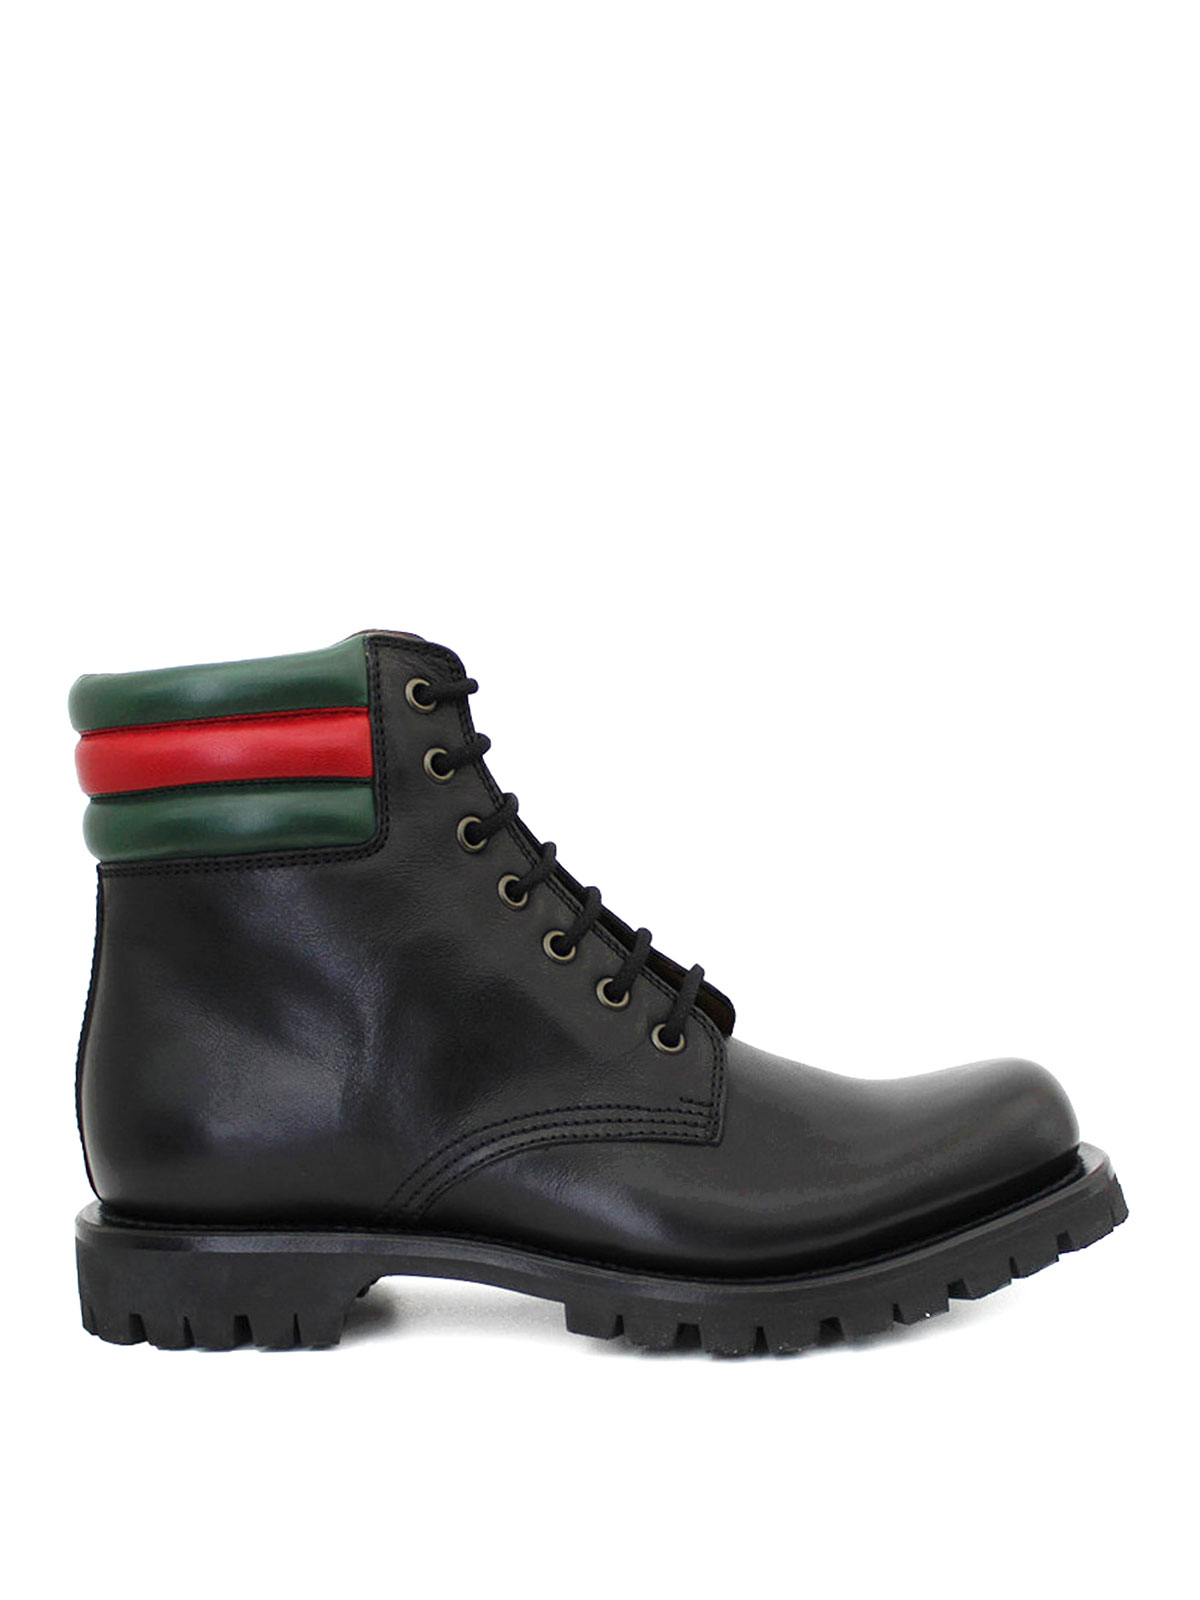 Gucci Web Detailed Combat Boots Ankle Boots 429220